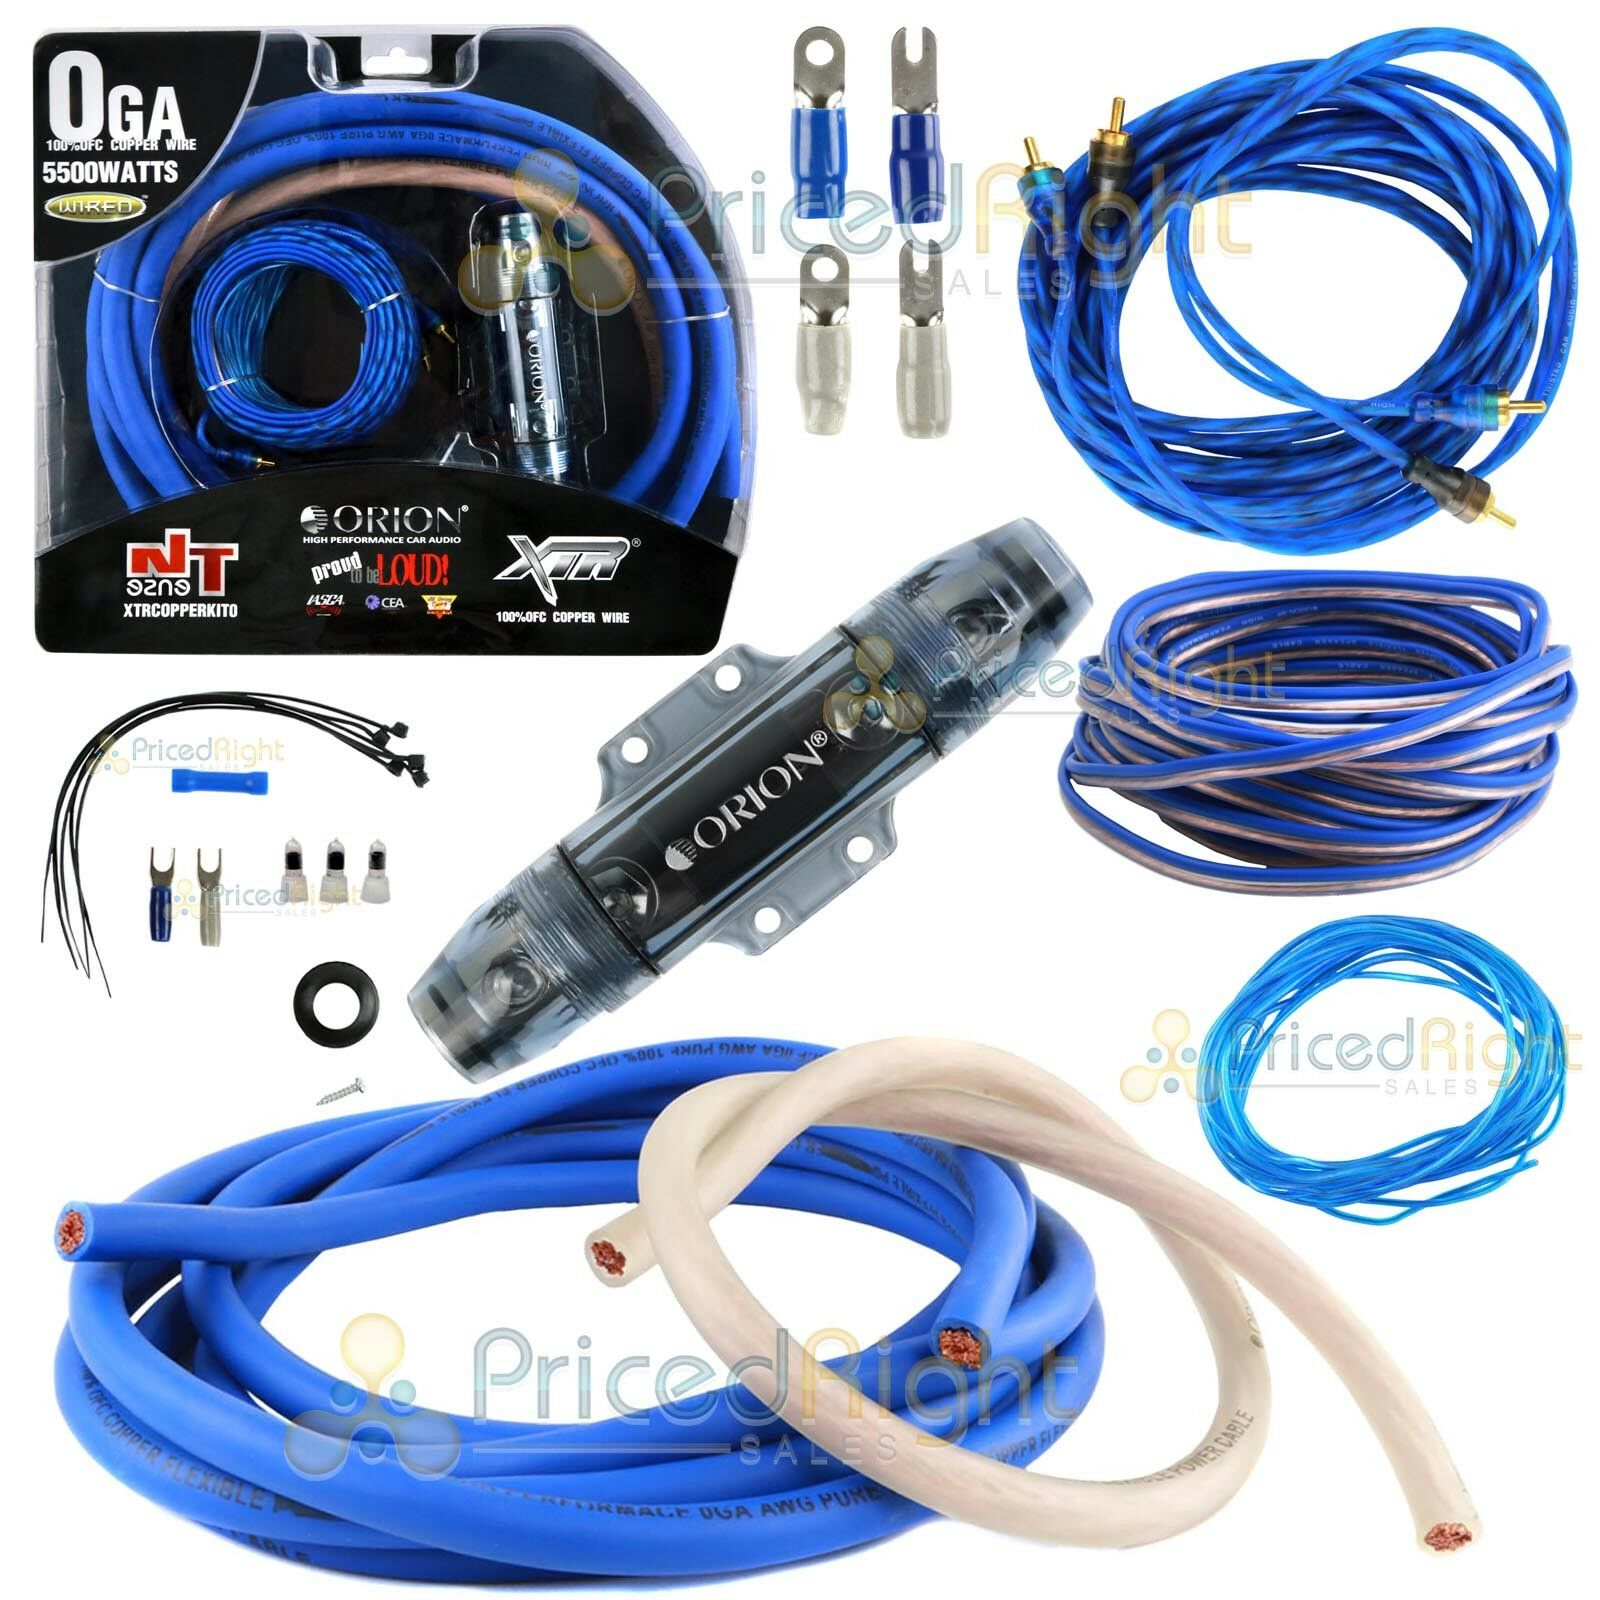 hight resolution of nvx true spec 1 0 gauge complete dual amp 100 copper wiring kit xapk1d for sale online ebay